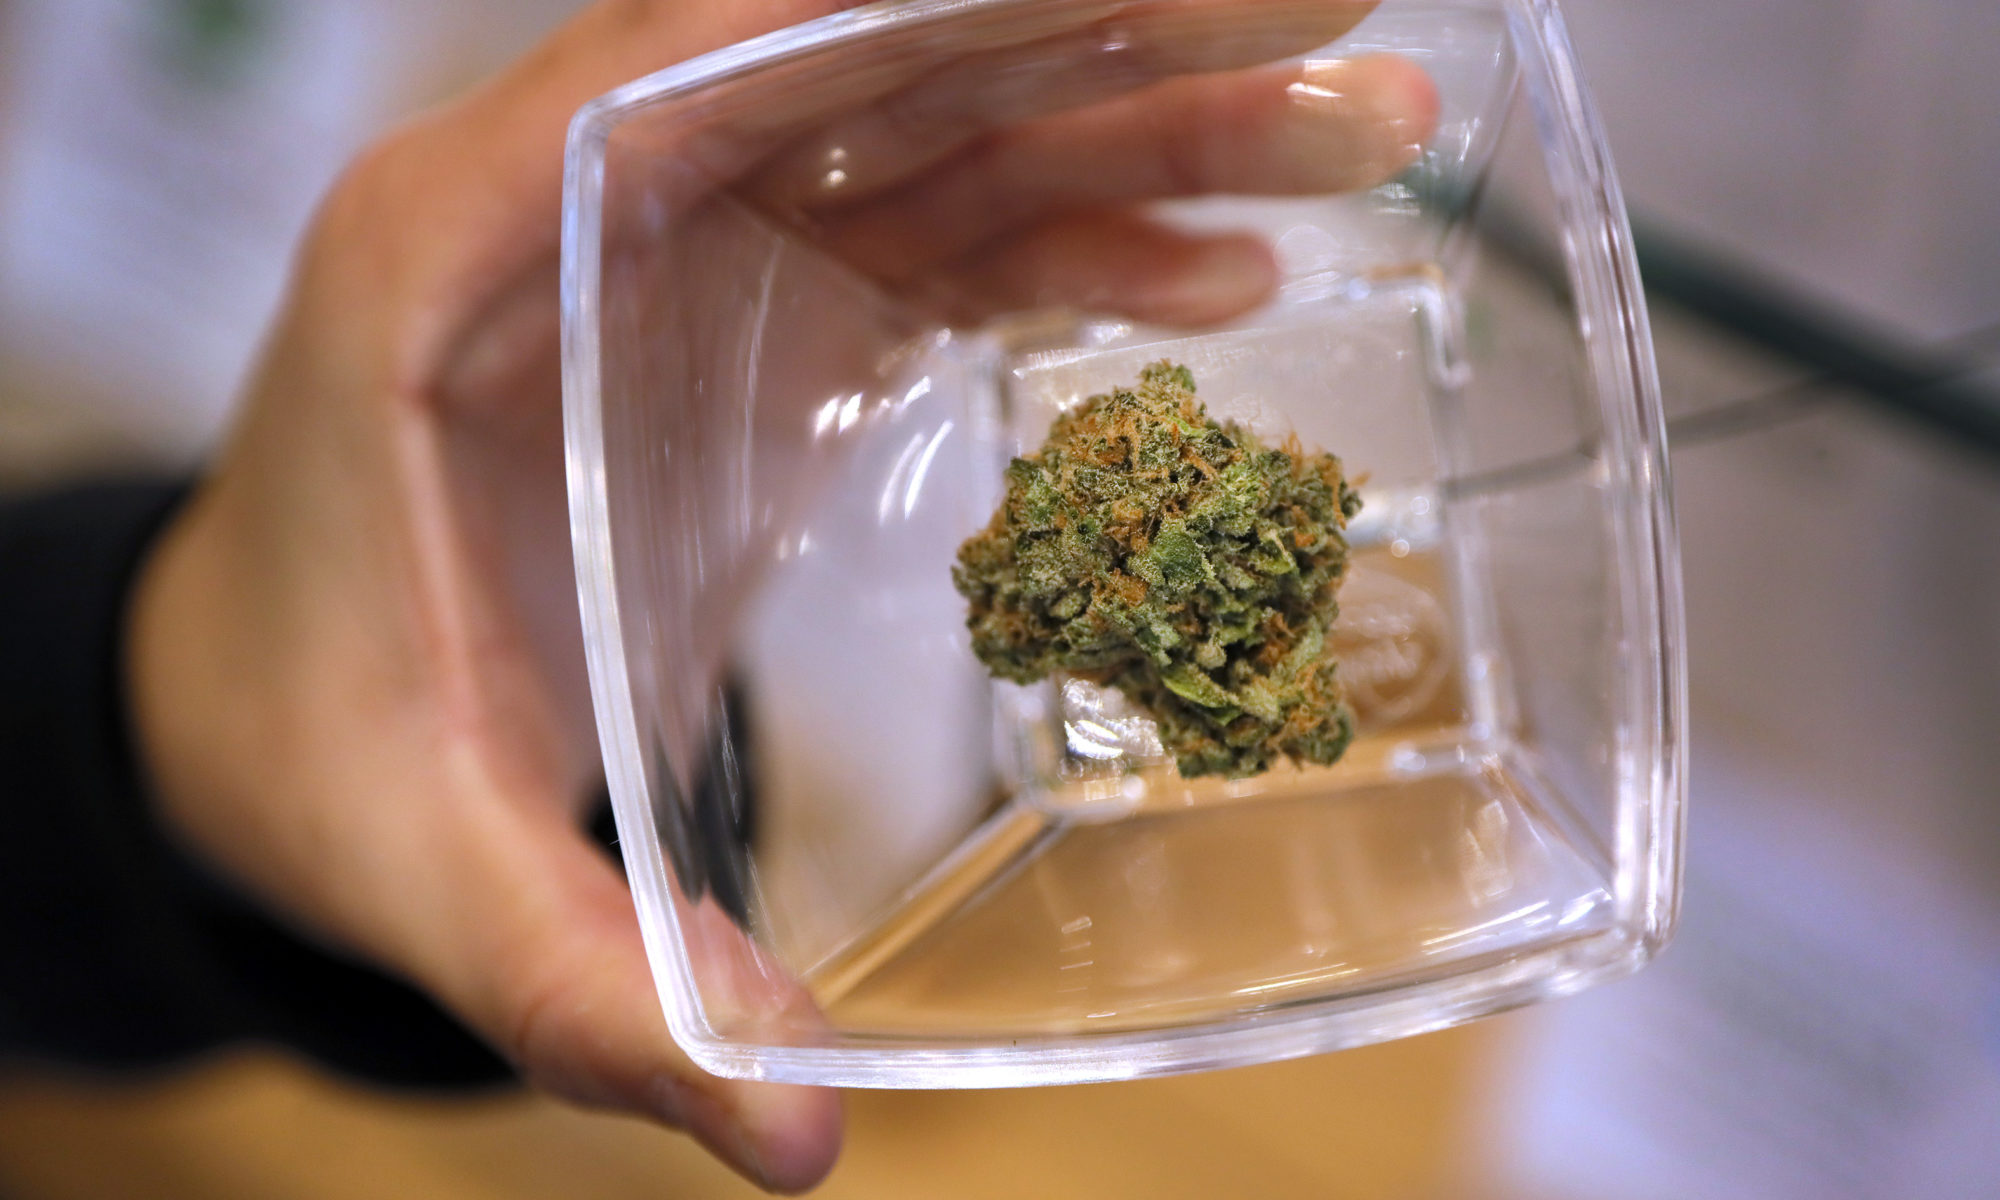 A hand holding a clear jar with marijuana in the bottom